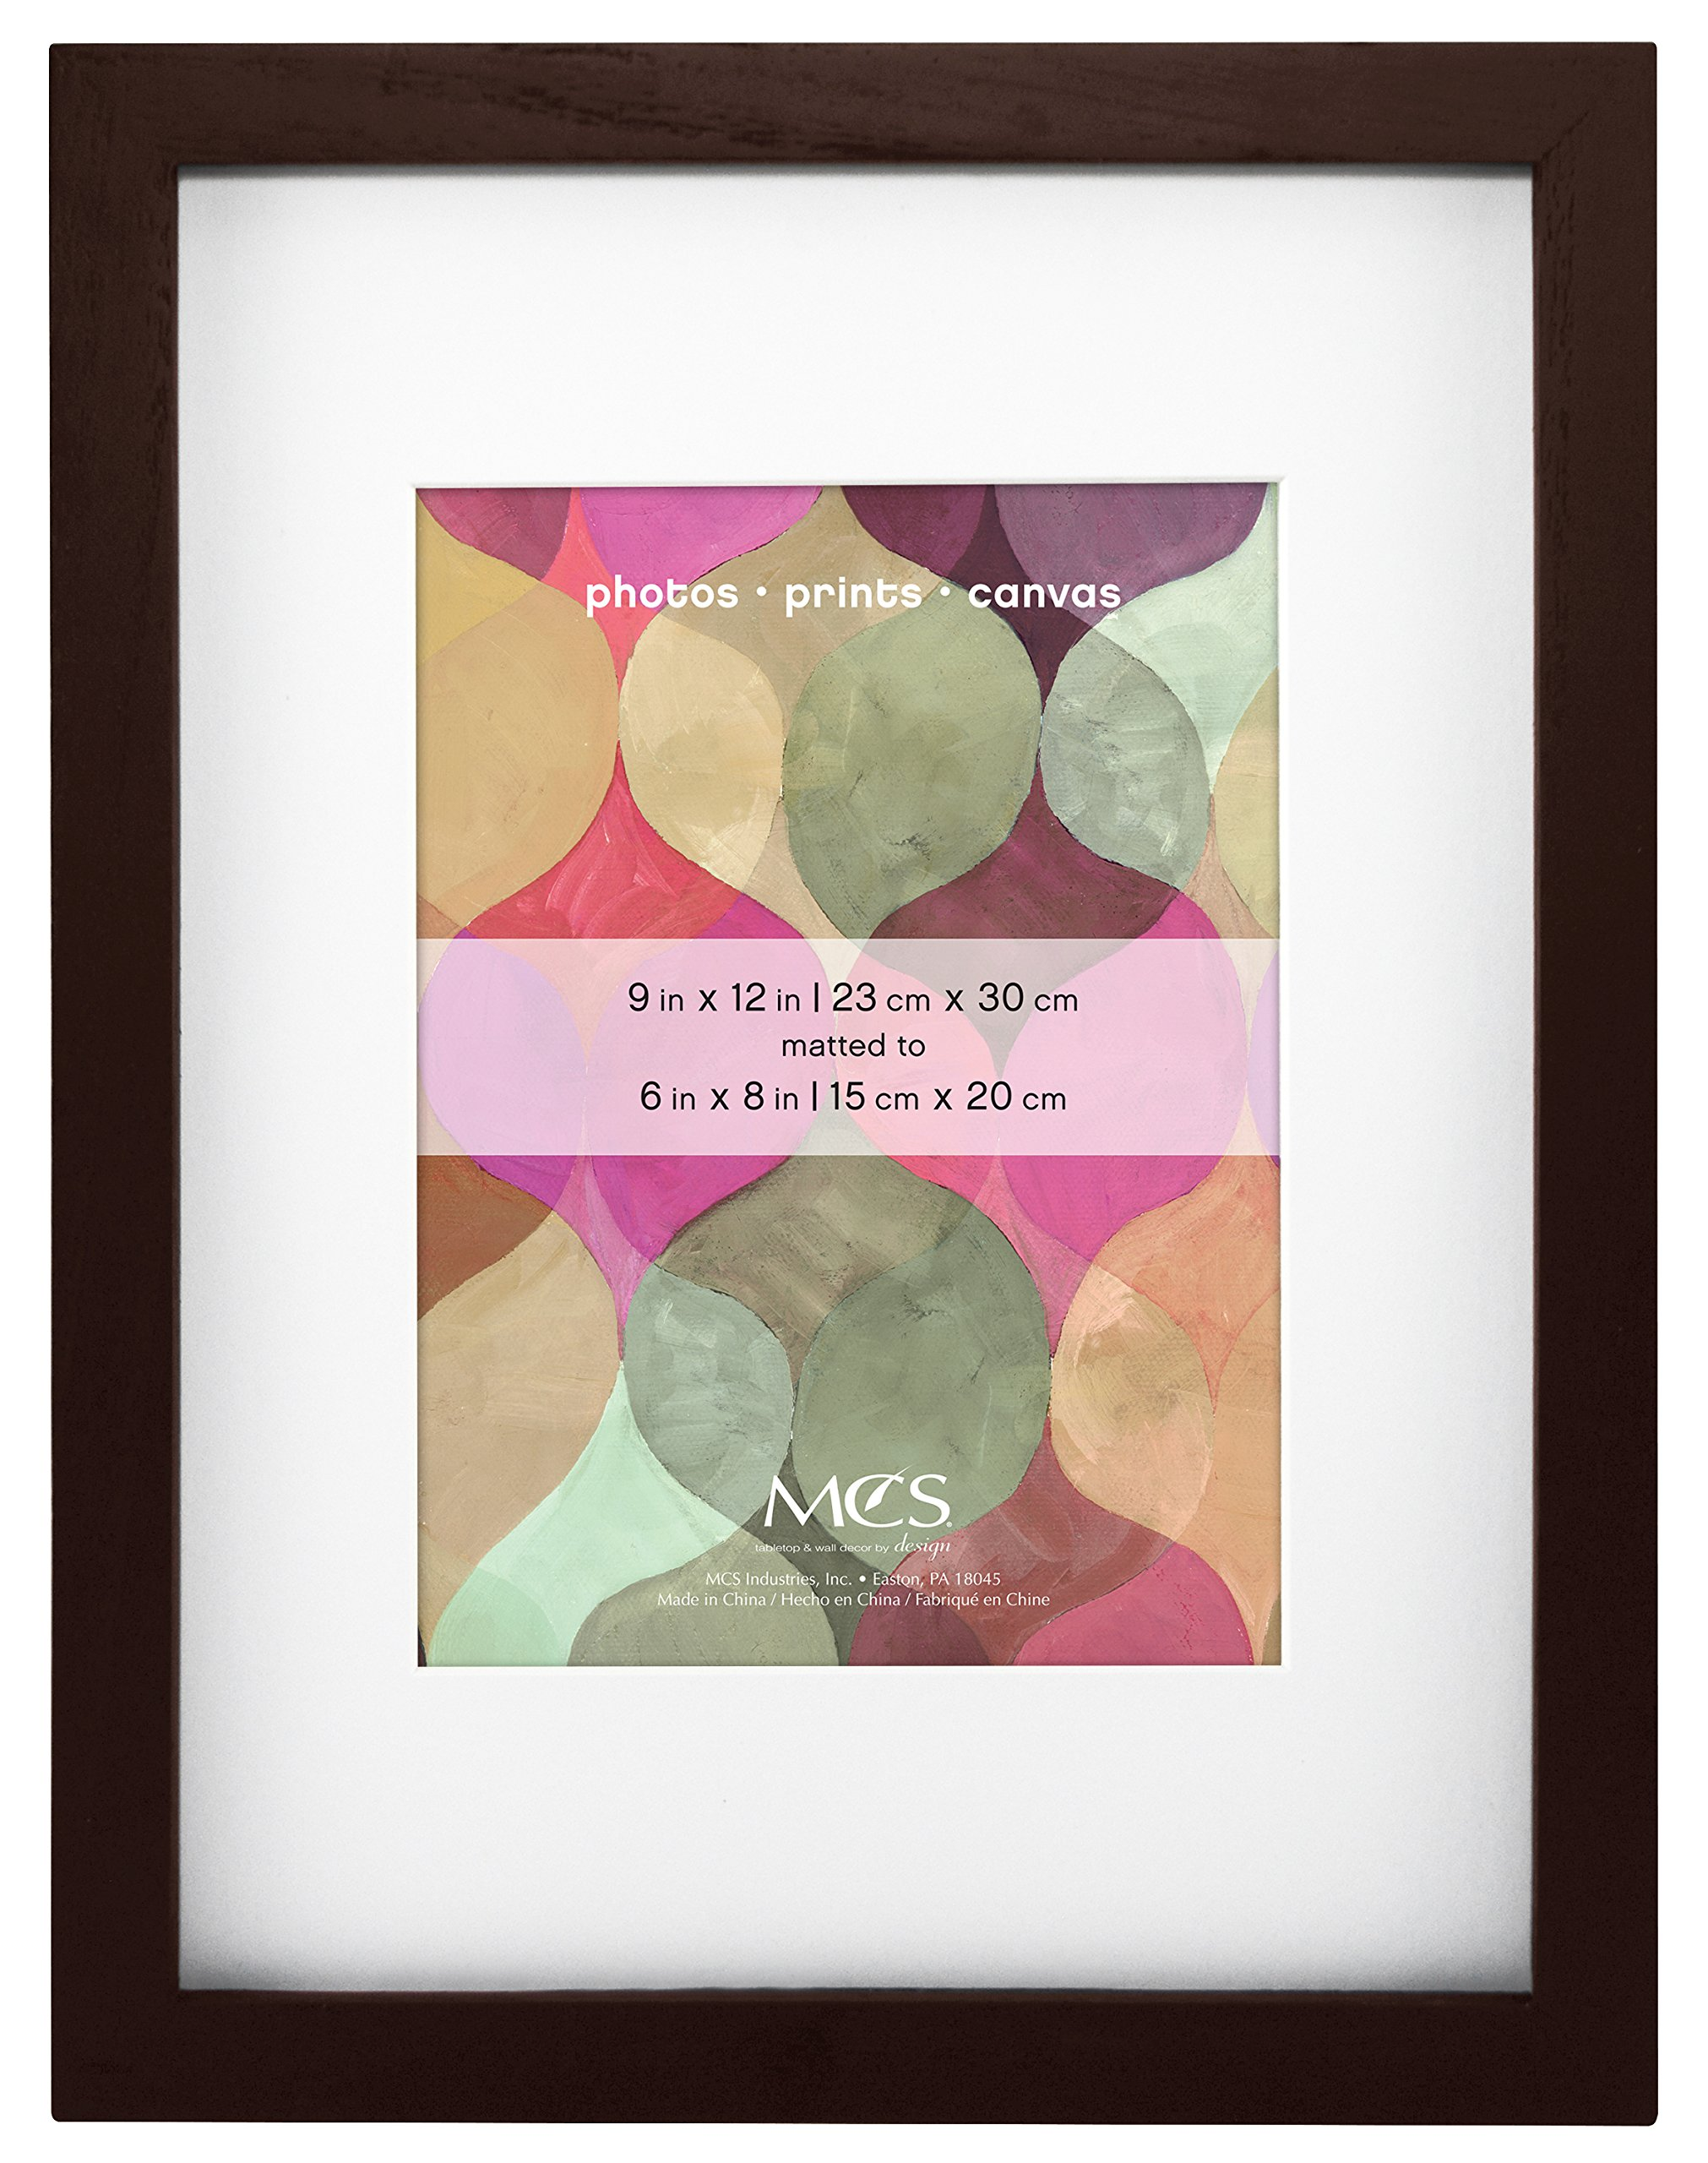 MCS 9x12 Inch Art Frame with 6x8 Inch Mat Opening, Walnut (47585) by MCS